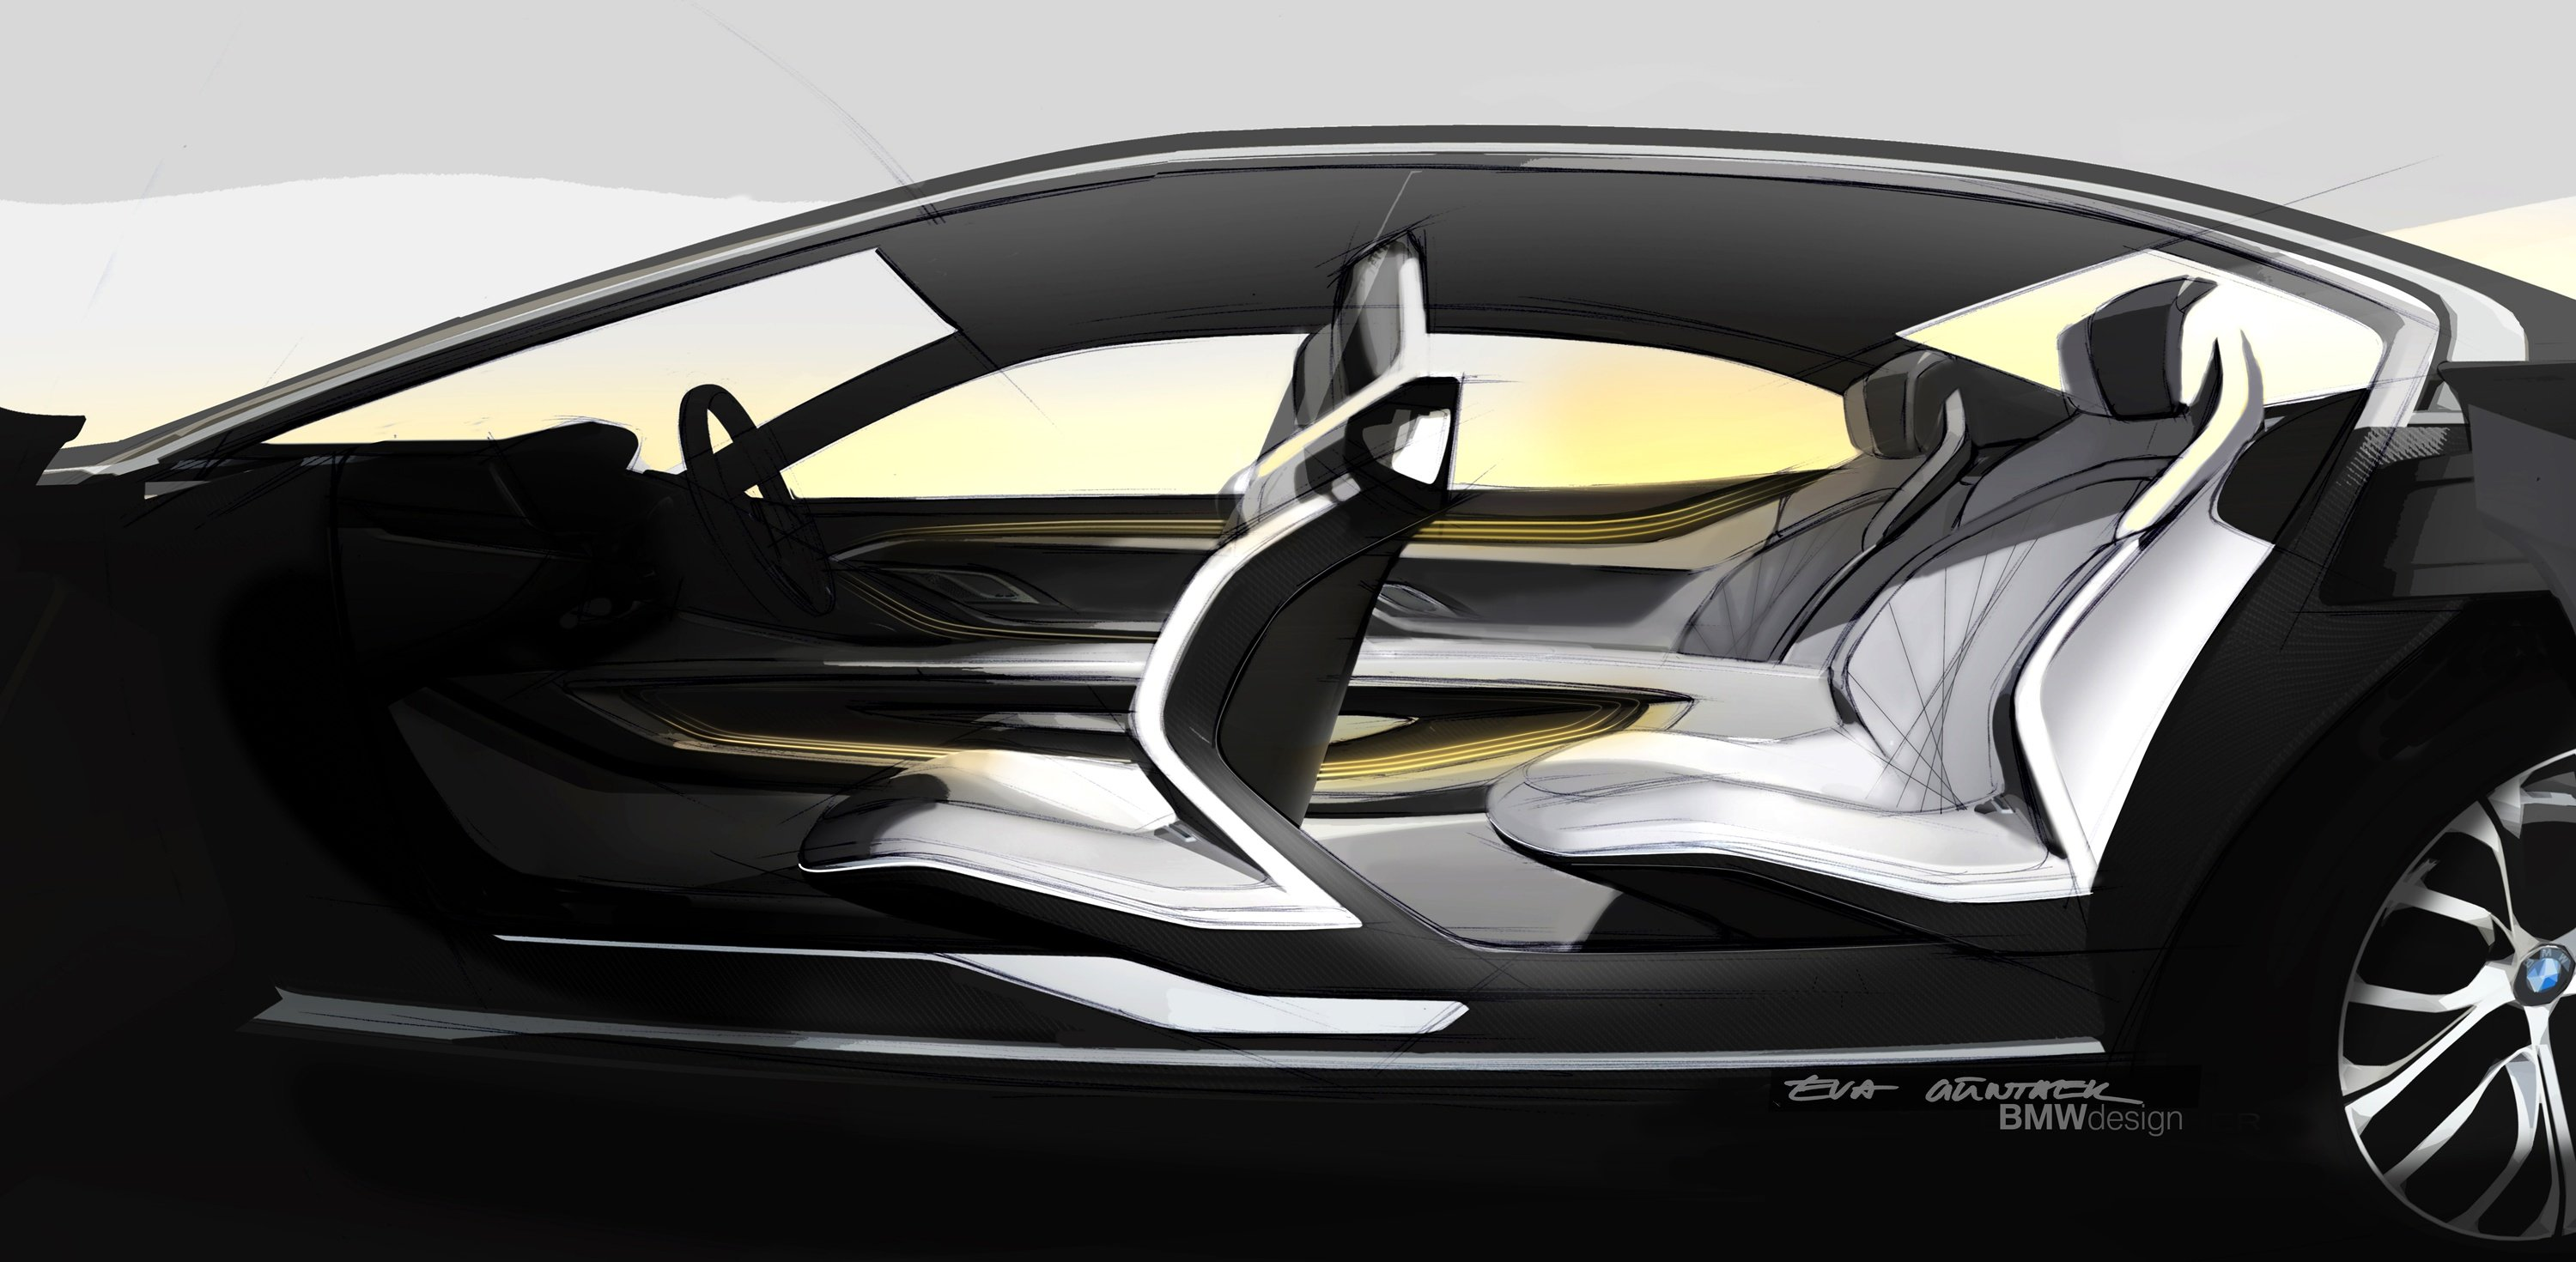 BMW_Vision_Future_Luxury_big_3000x1470